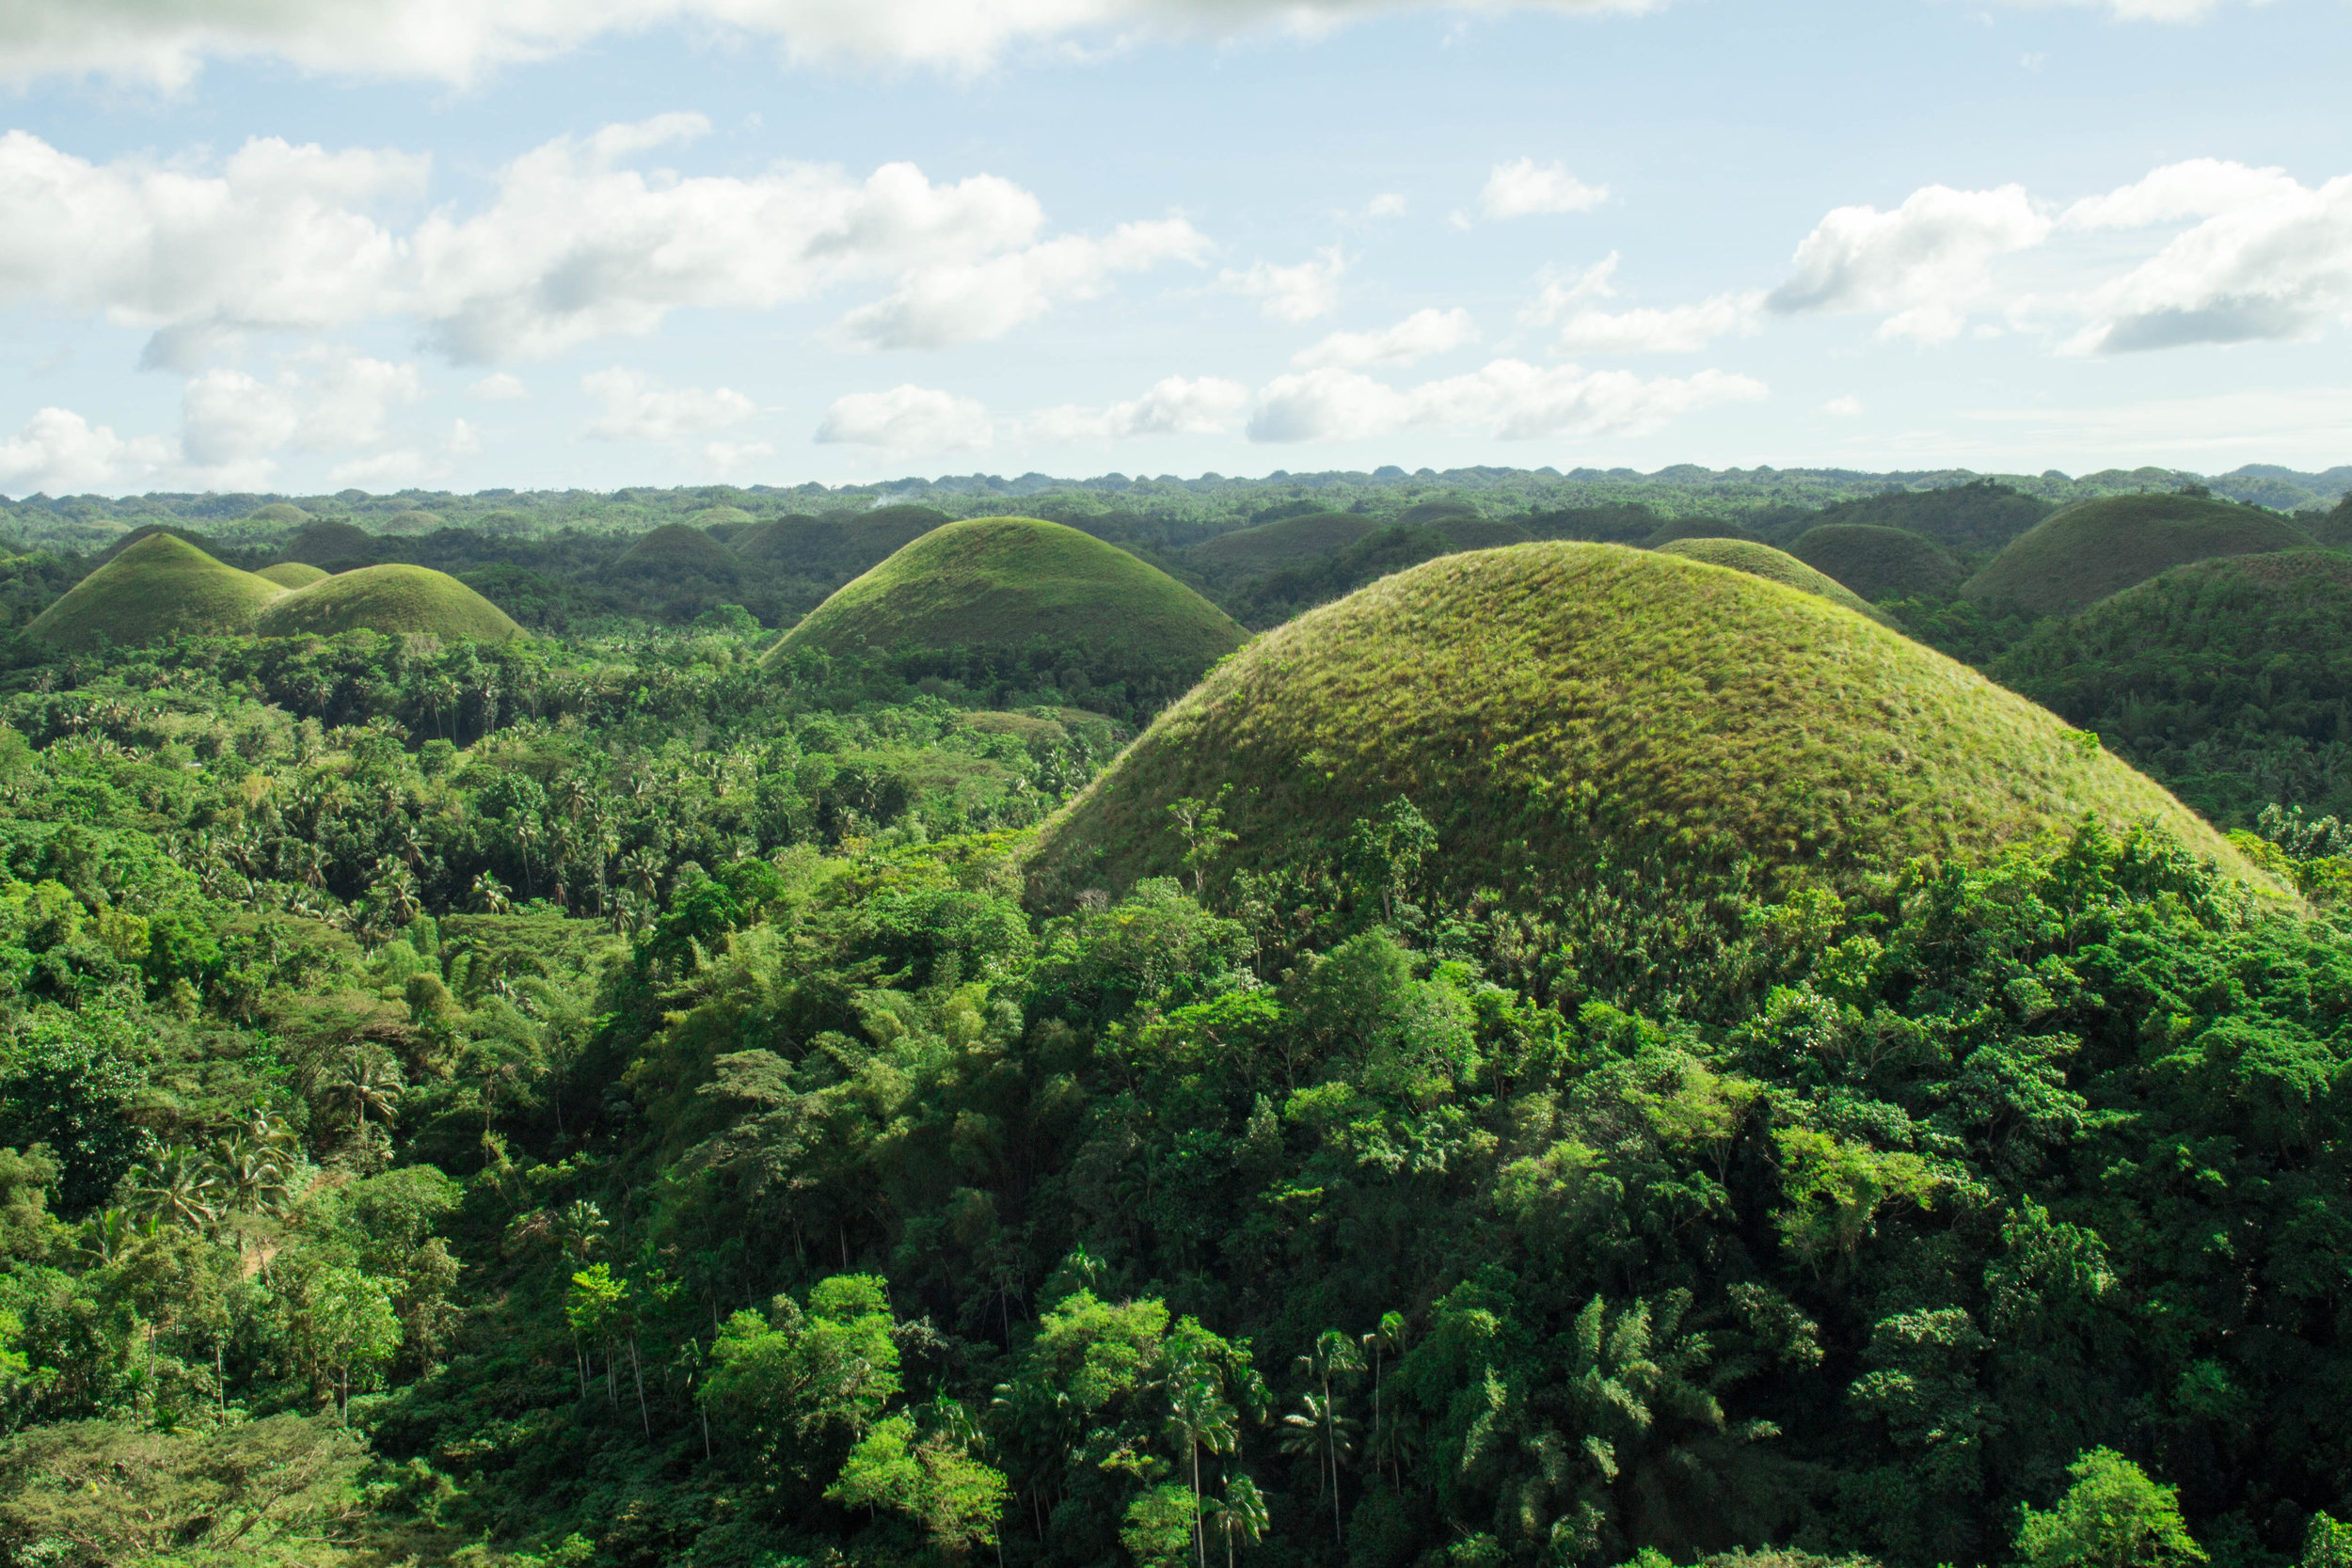 Chocolate Hills, named after the color that the grass takes on during the dry seaon